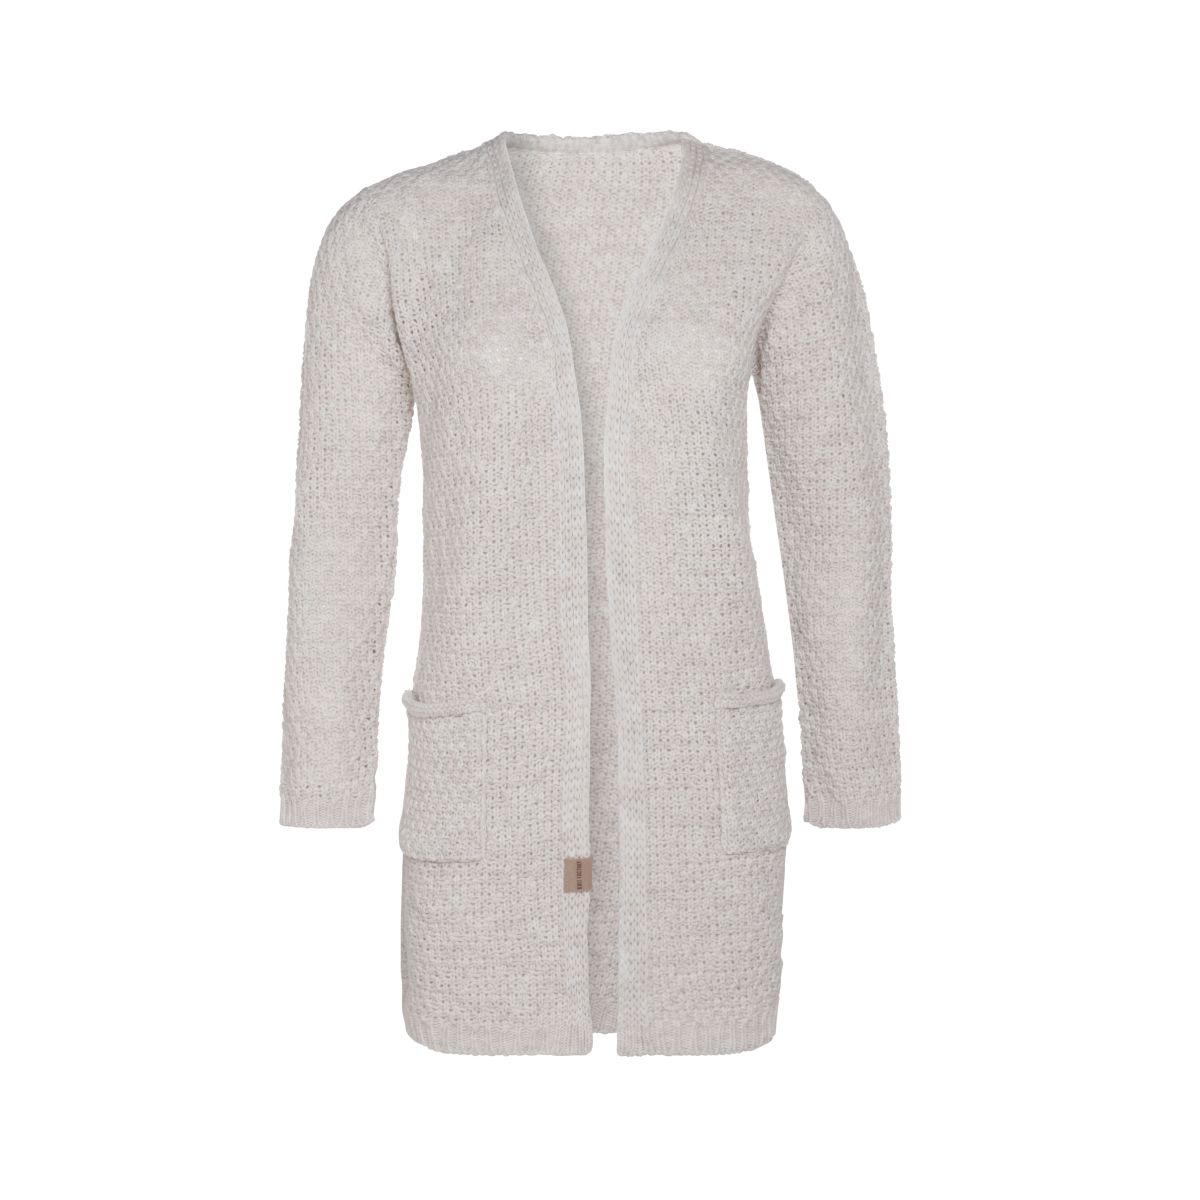 luna knitted cardigan beige 4042 with side pockets